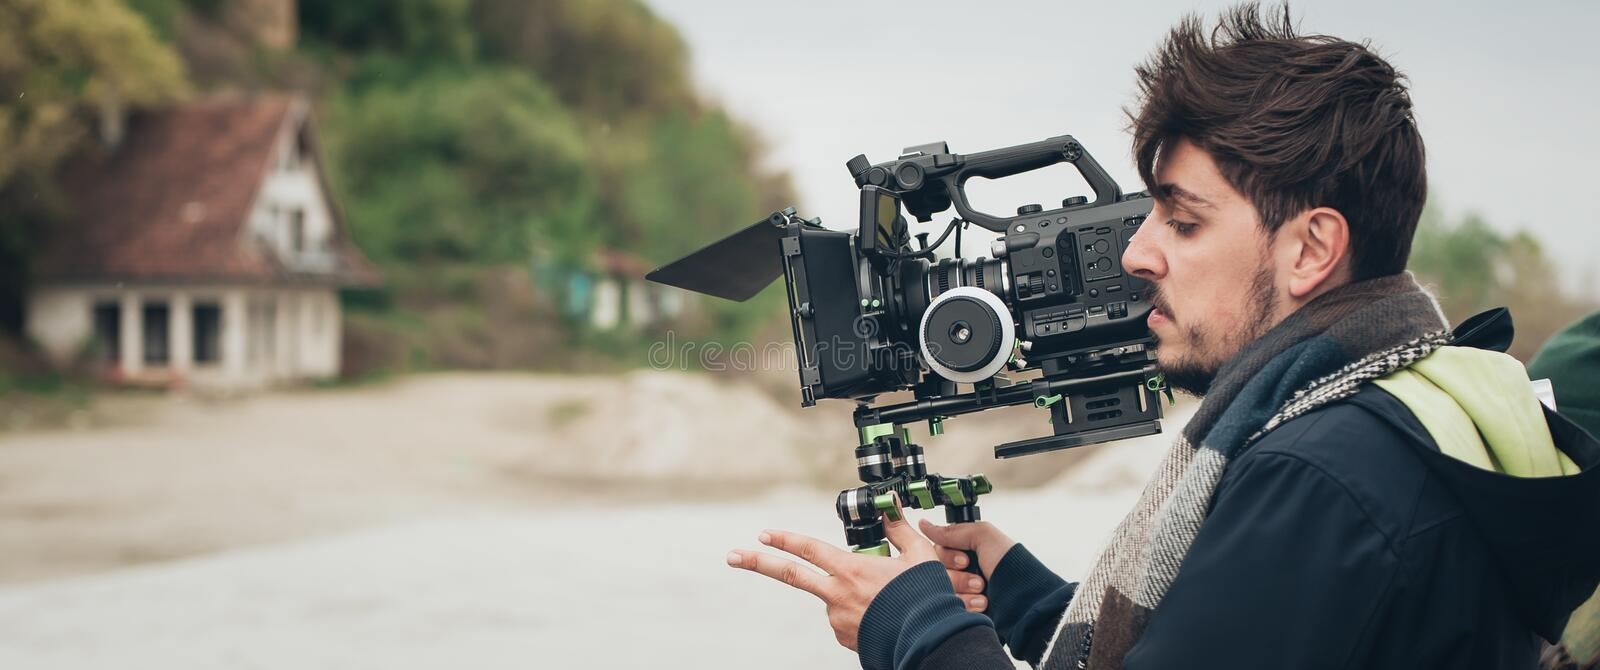 Behind the scene. Cameraman shooting film scene with his camera stock images